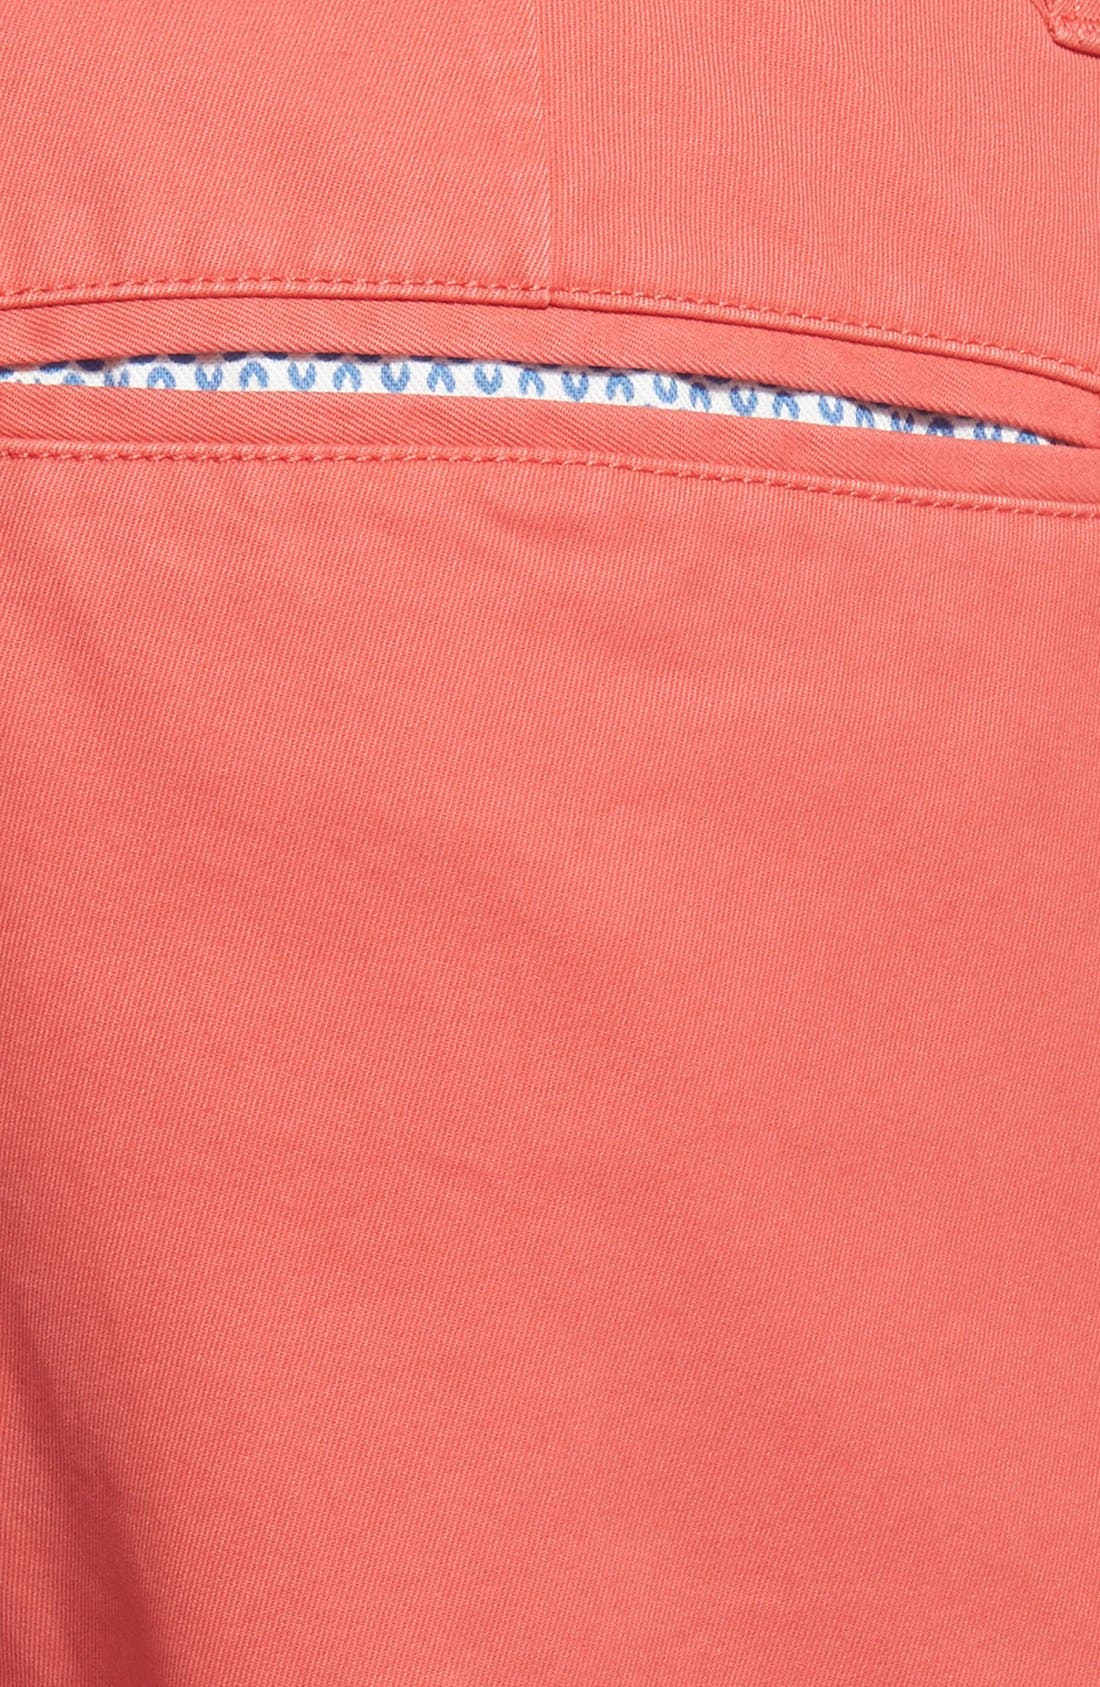 ,                             Washed Chino Shorts,                             Alternate thumbnail 80, color,                             600